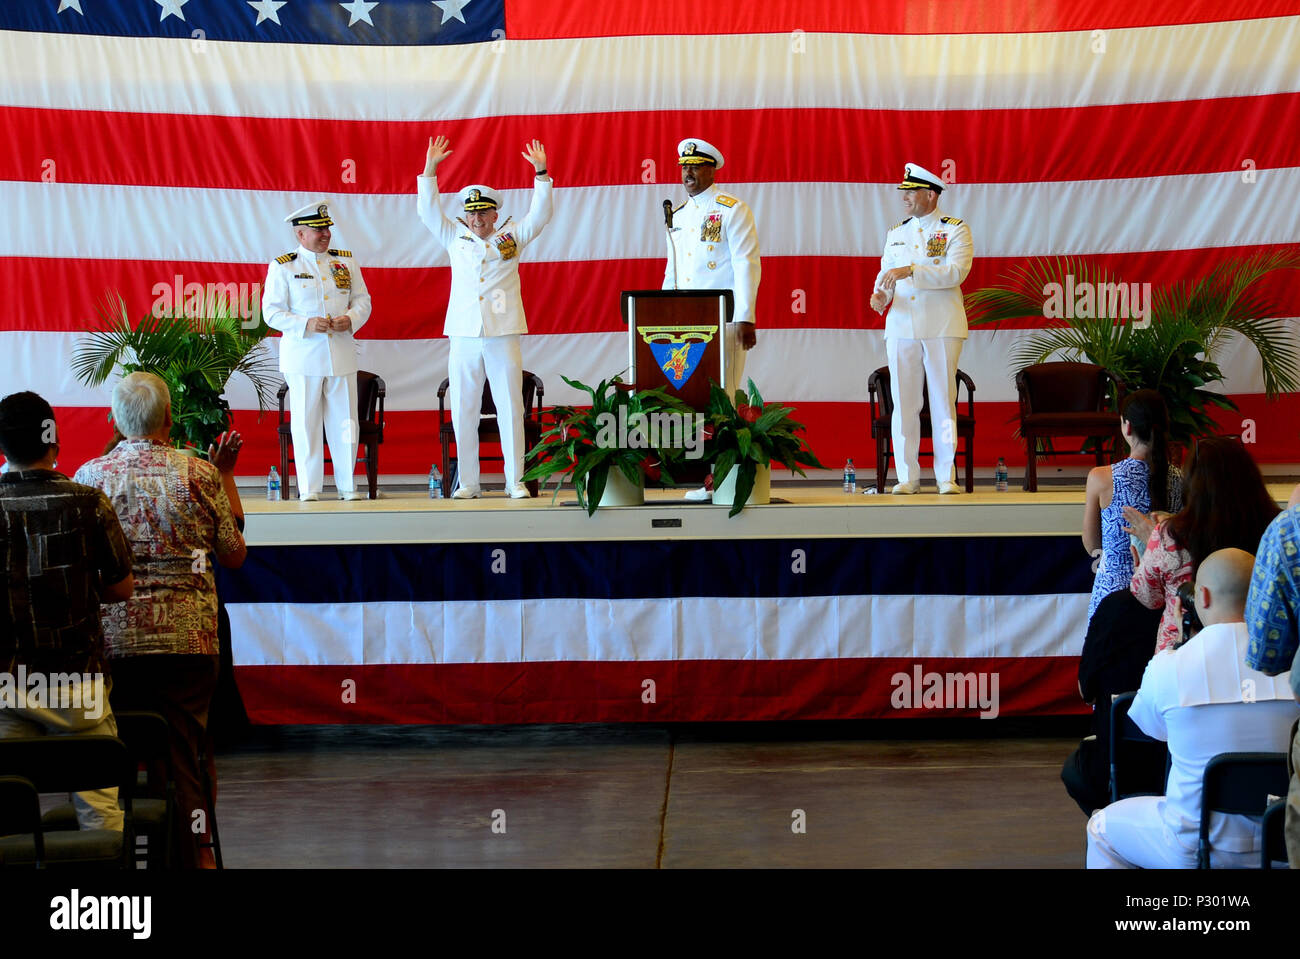 160812-N-SS432-053  BARKING SANDS, Hawaii (Aug. 12, 2016) Capt. Bruce Hay acknowledges the audience as they give him a big aloha welcome during Pacific Missile Range Facility's change of command ceremony. Hay is being relieved as commanding officer by Capt. Vincent Johnson. (U.S. Navy photo by Mass Communication Specialist 2nd Class Omar Powell/Released) Stock Photo